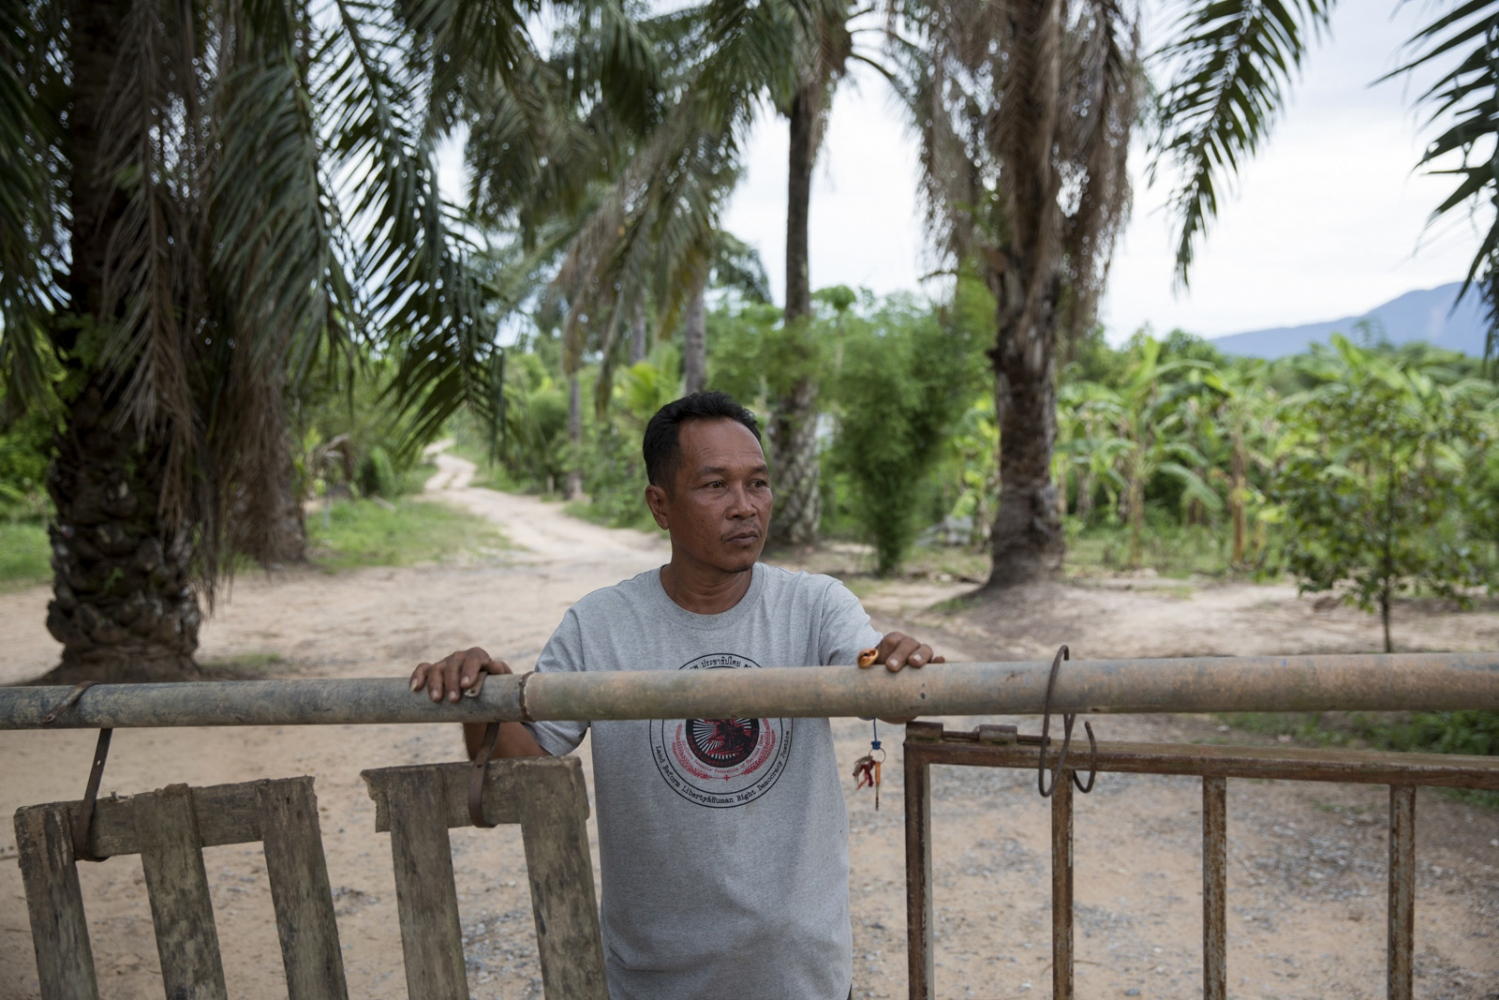 Tawat Ruangsi, 48, stands at the main entrance and security post to Klong Sai Pattana village after having just closed the gate at 6pm. The village tries to limit the number of vehicles entering and leaving during the night and re-opens at 6am. In total the village has 4 security posts which are manned 24 hours a day by the villagers who take it in turn in small groups of 3-4 people.